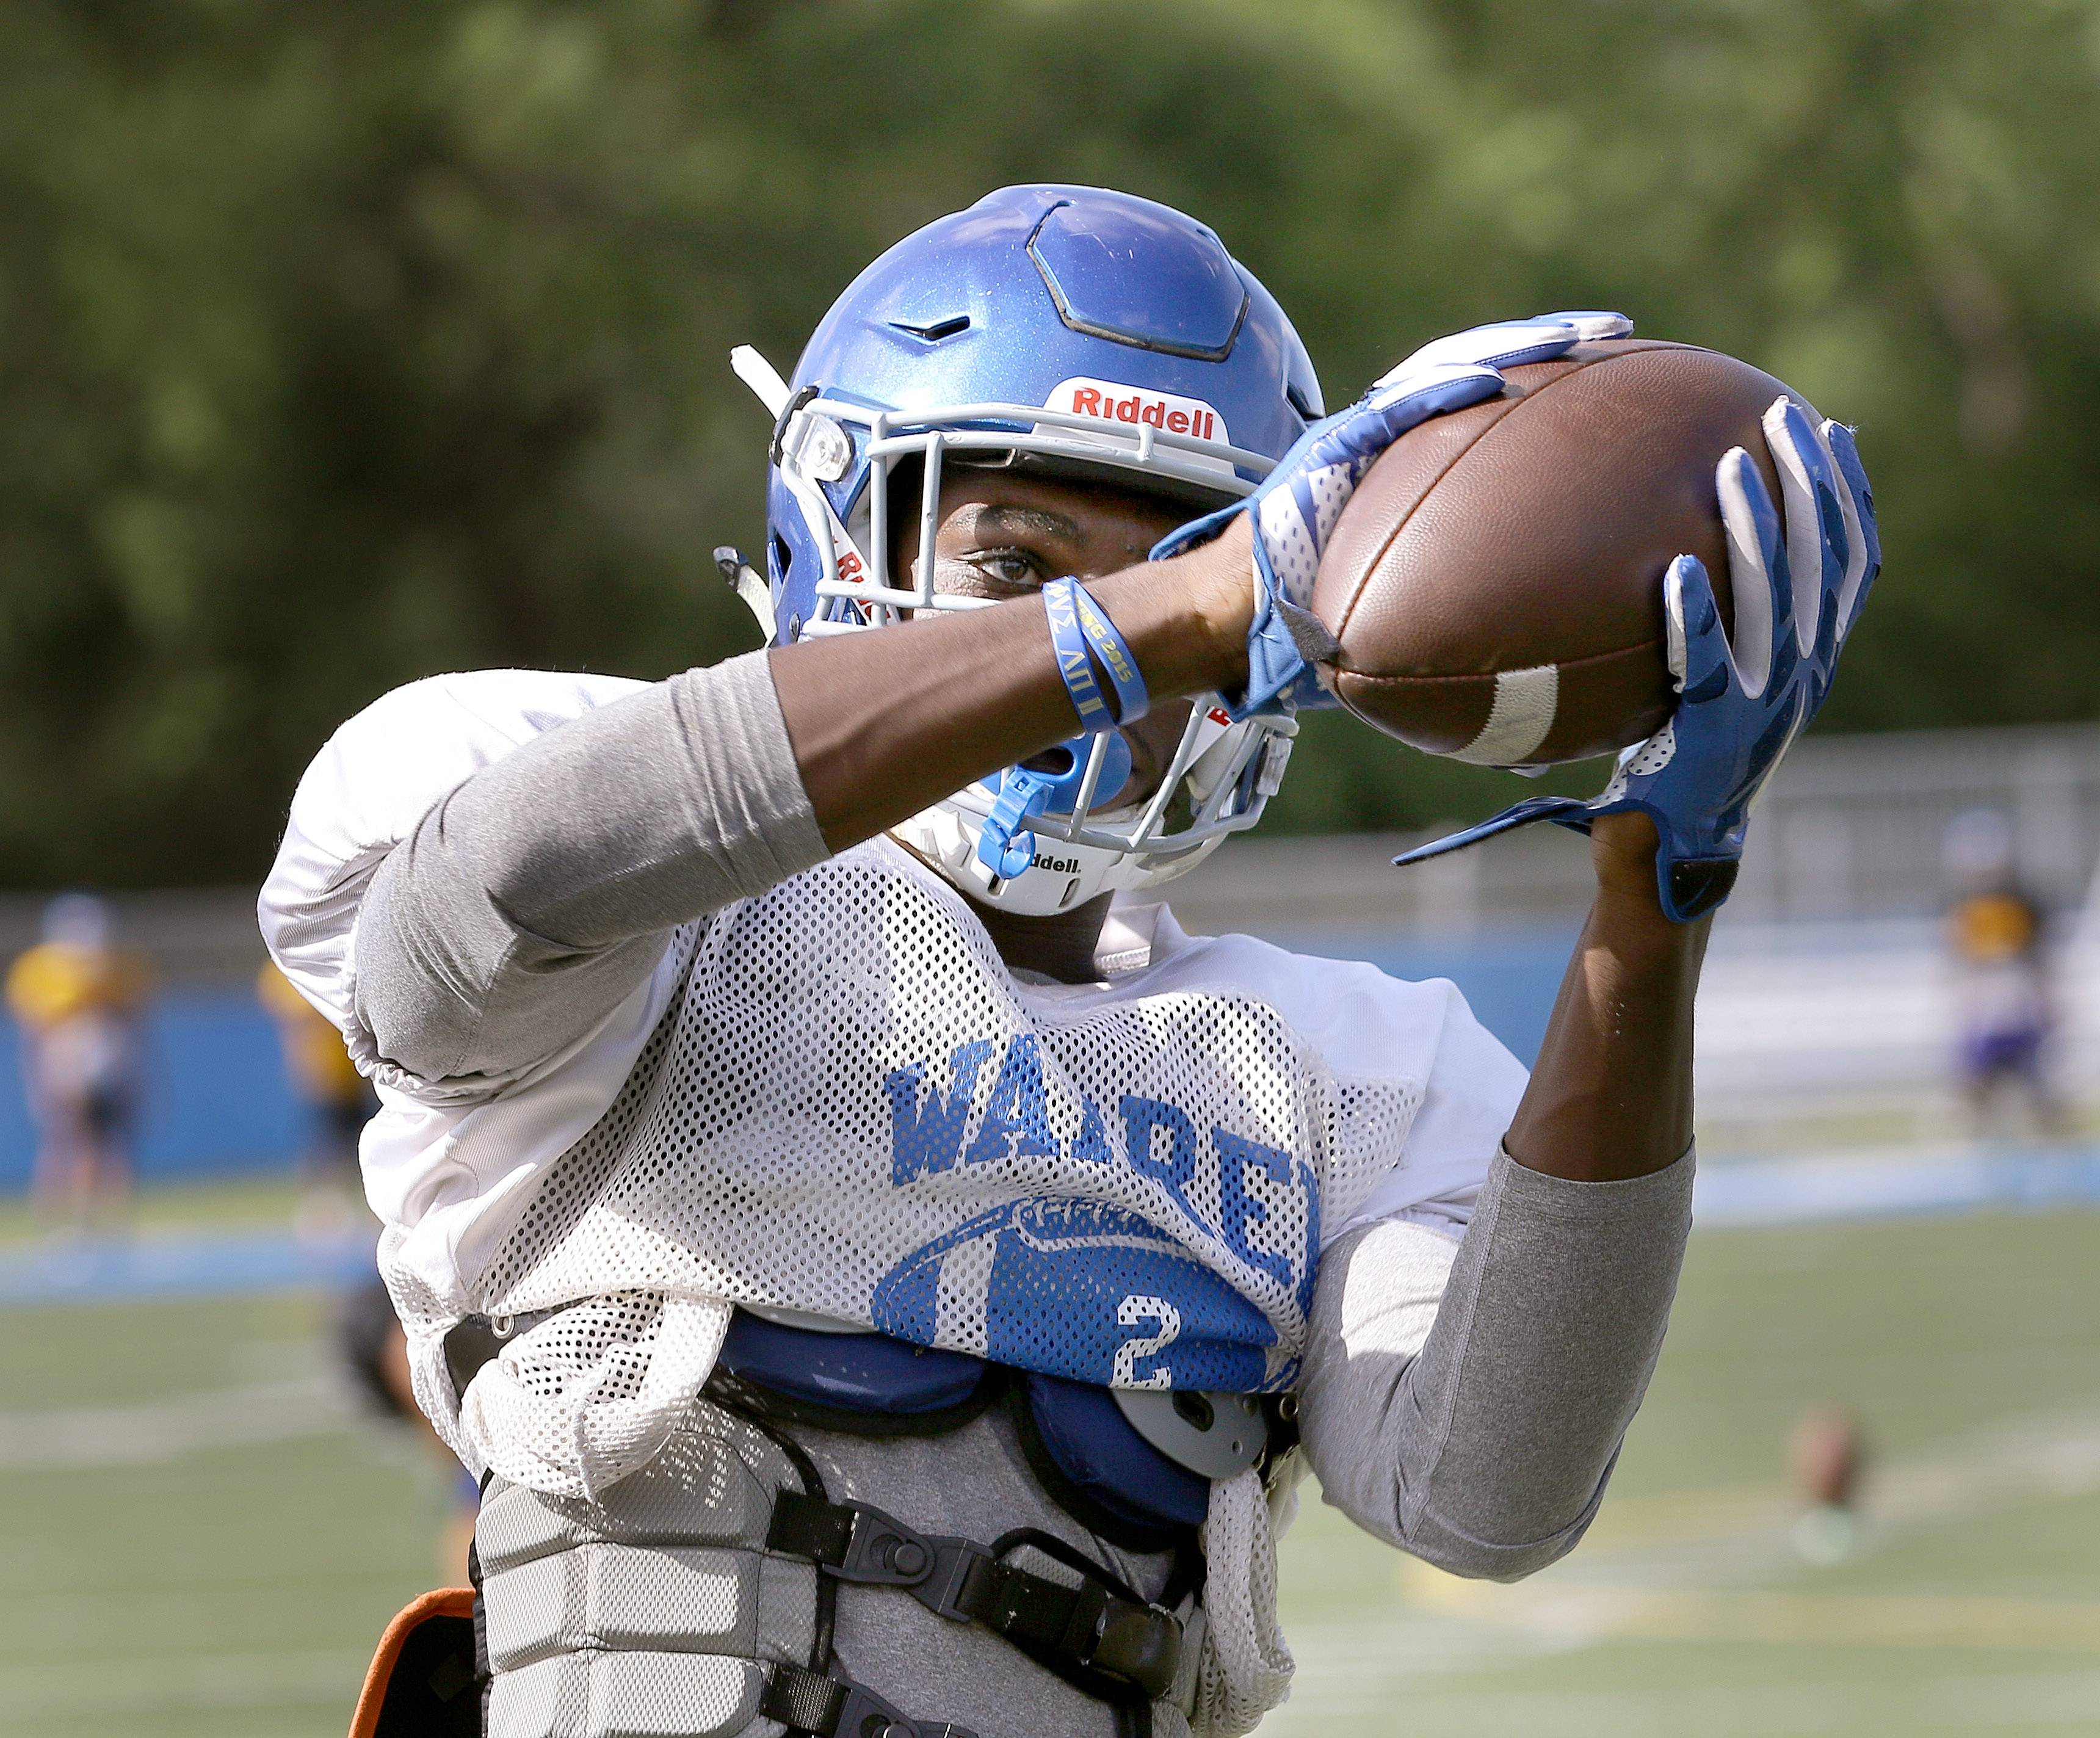 Receiver Micah Jones is among the highly skilled returning players for a Warren team which figures to be young but talented.